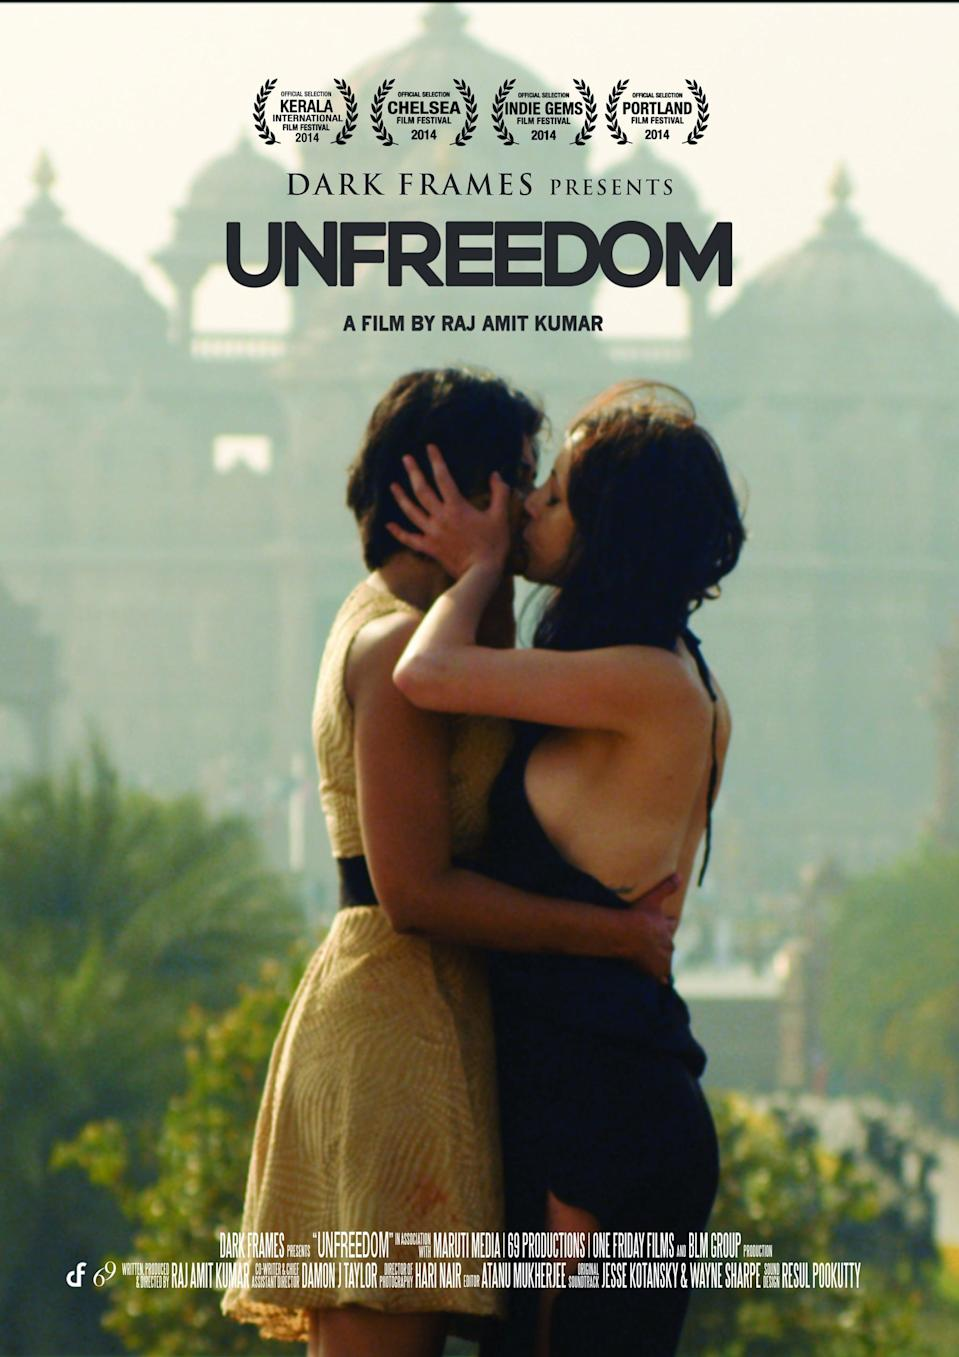 "<p>Despite her father's efforts to force her into an arranged marriage, this flick tells the story of a woman who kidnaps her bisexual lover in an attempt to be together.</p> <p><a href=""https://www.netflix.com/title/80041337"" class=""link rapid-noclick-resp"" rel=""nofollow noopener"" target=""_blank"" data-ylk=""slk:Watch Unfreedom on Netflix now"">Watch <b>Unfreedom</b> on Netflix now</a>.</p>"